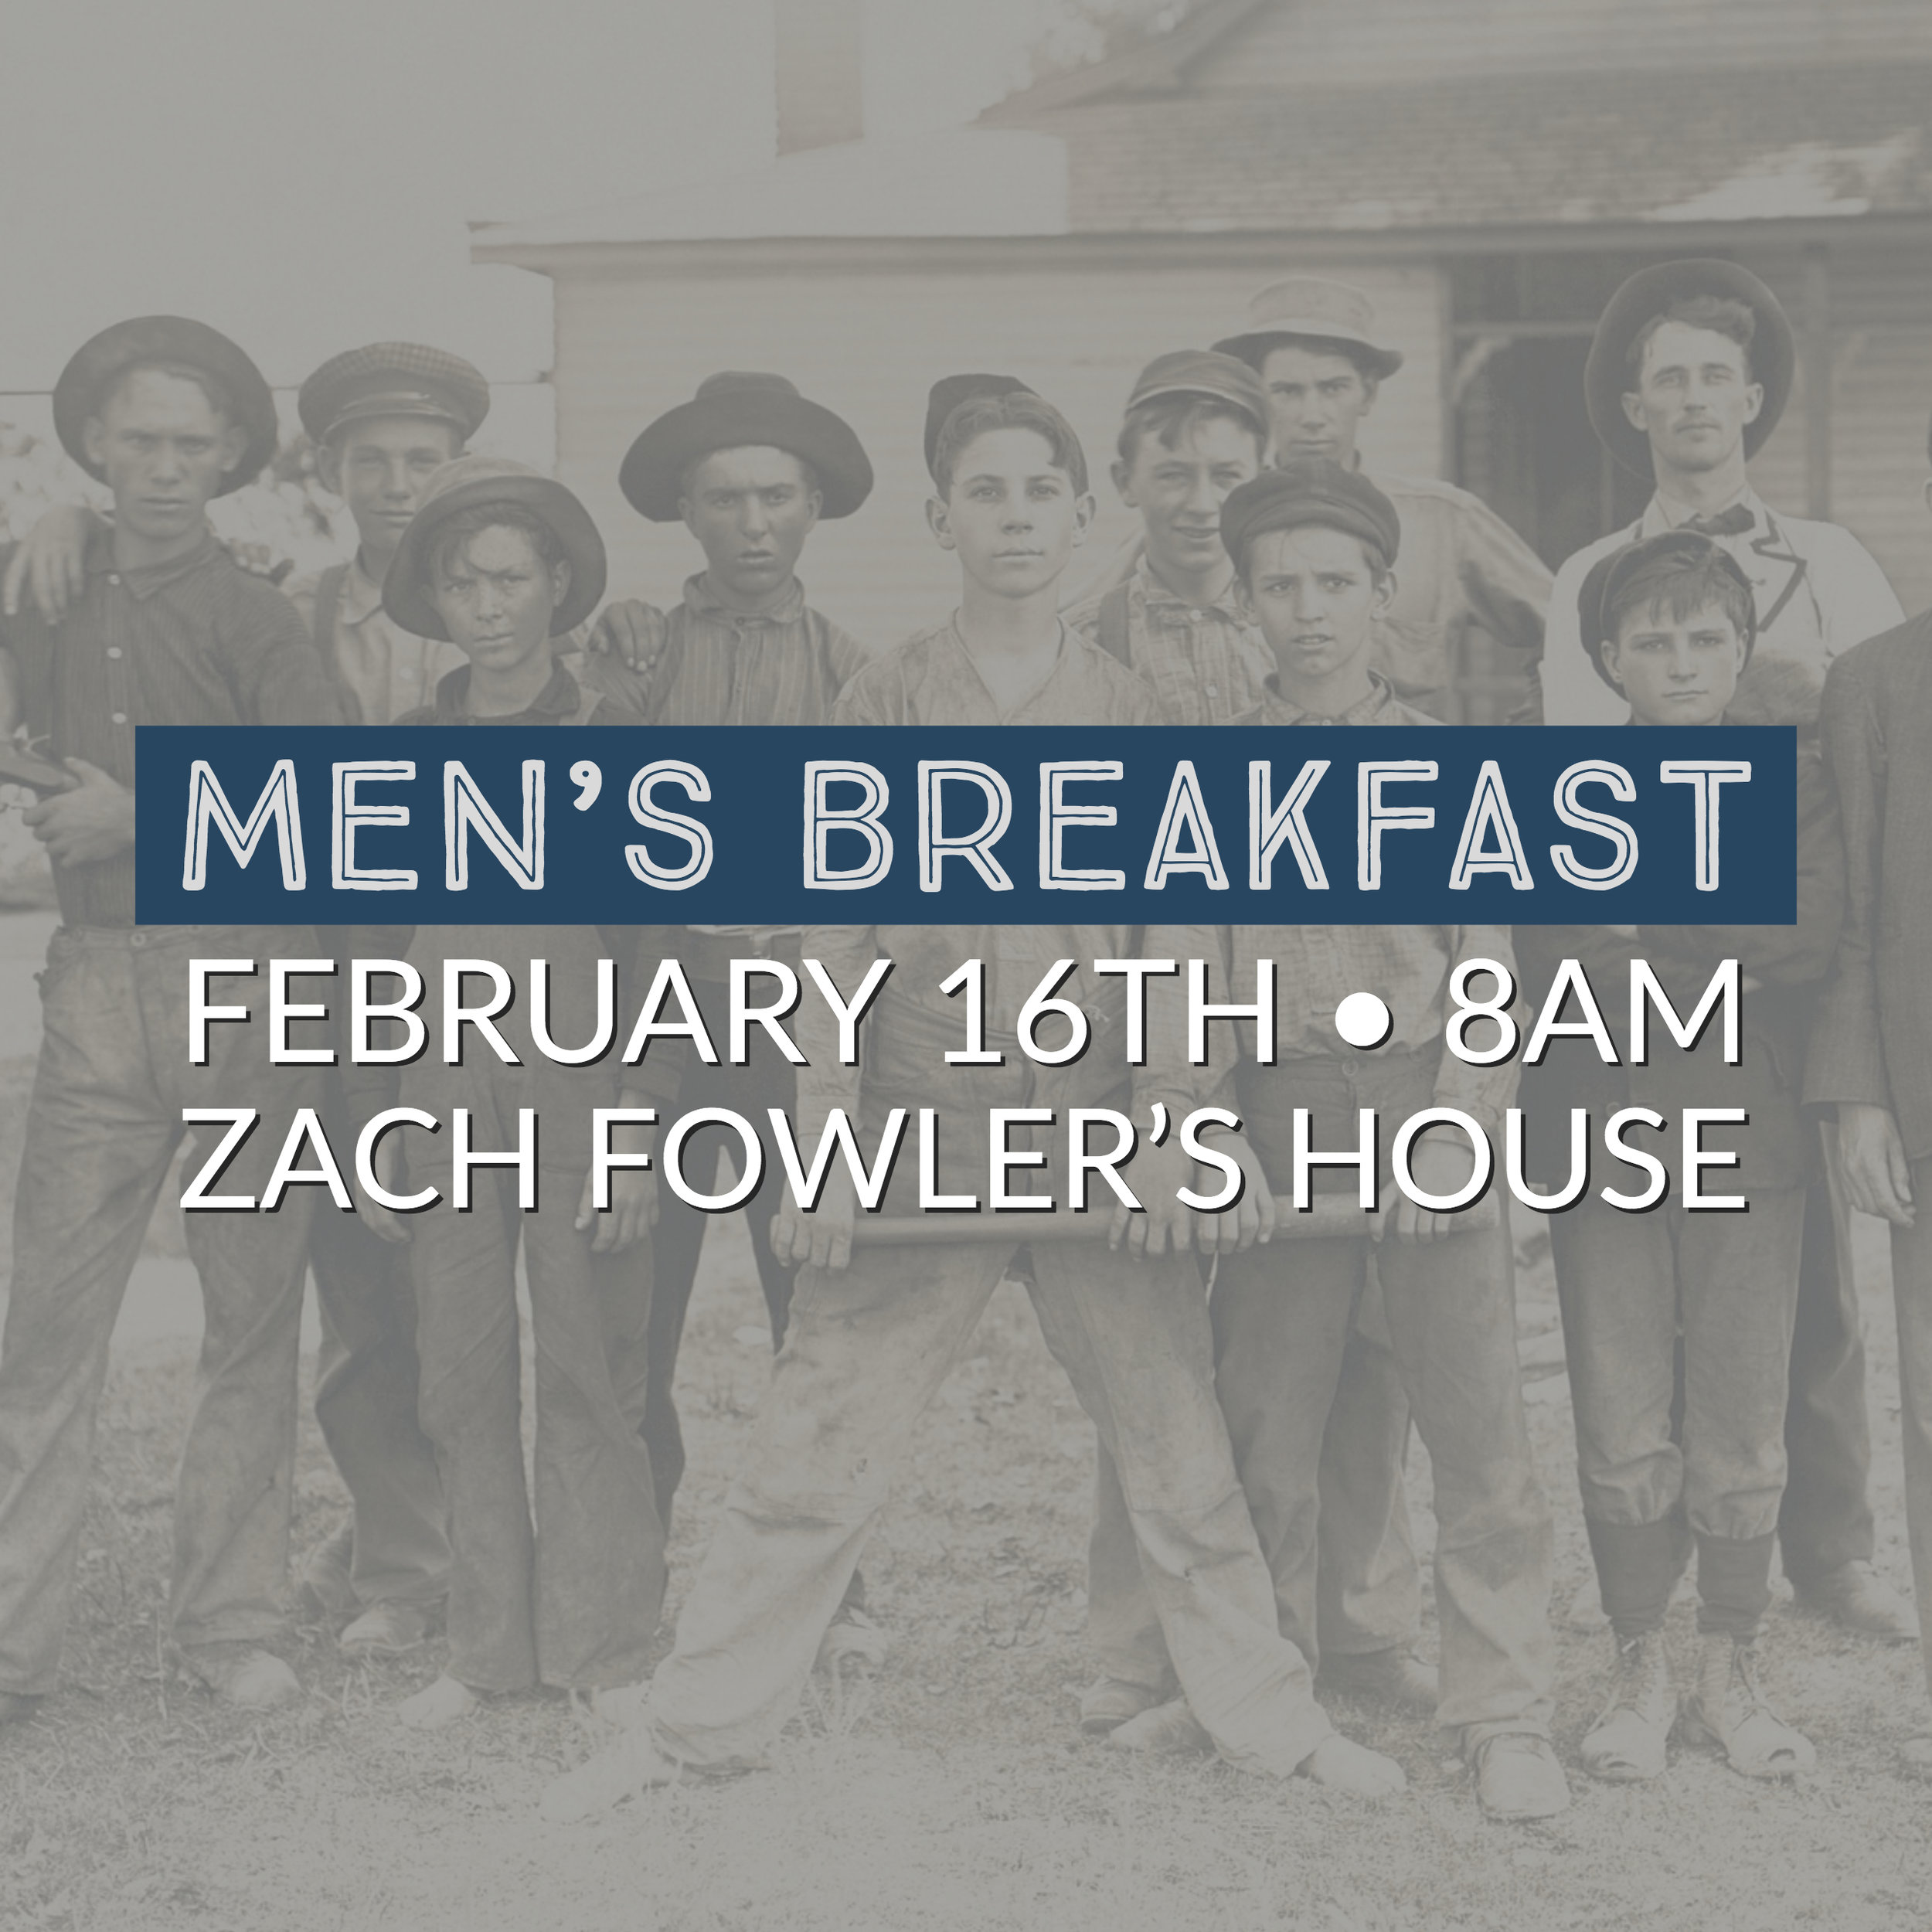 Men's Breakfast at Zach Fowler's House